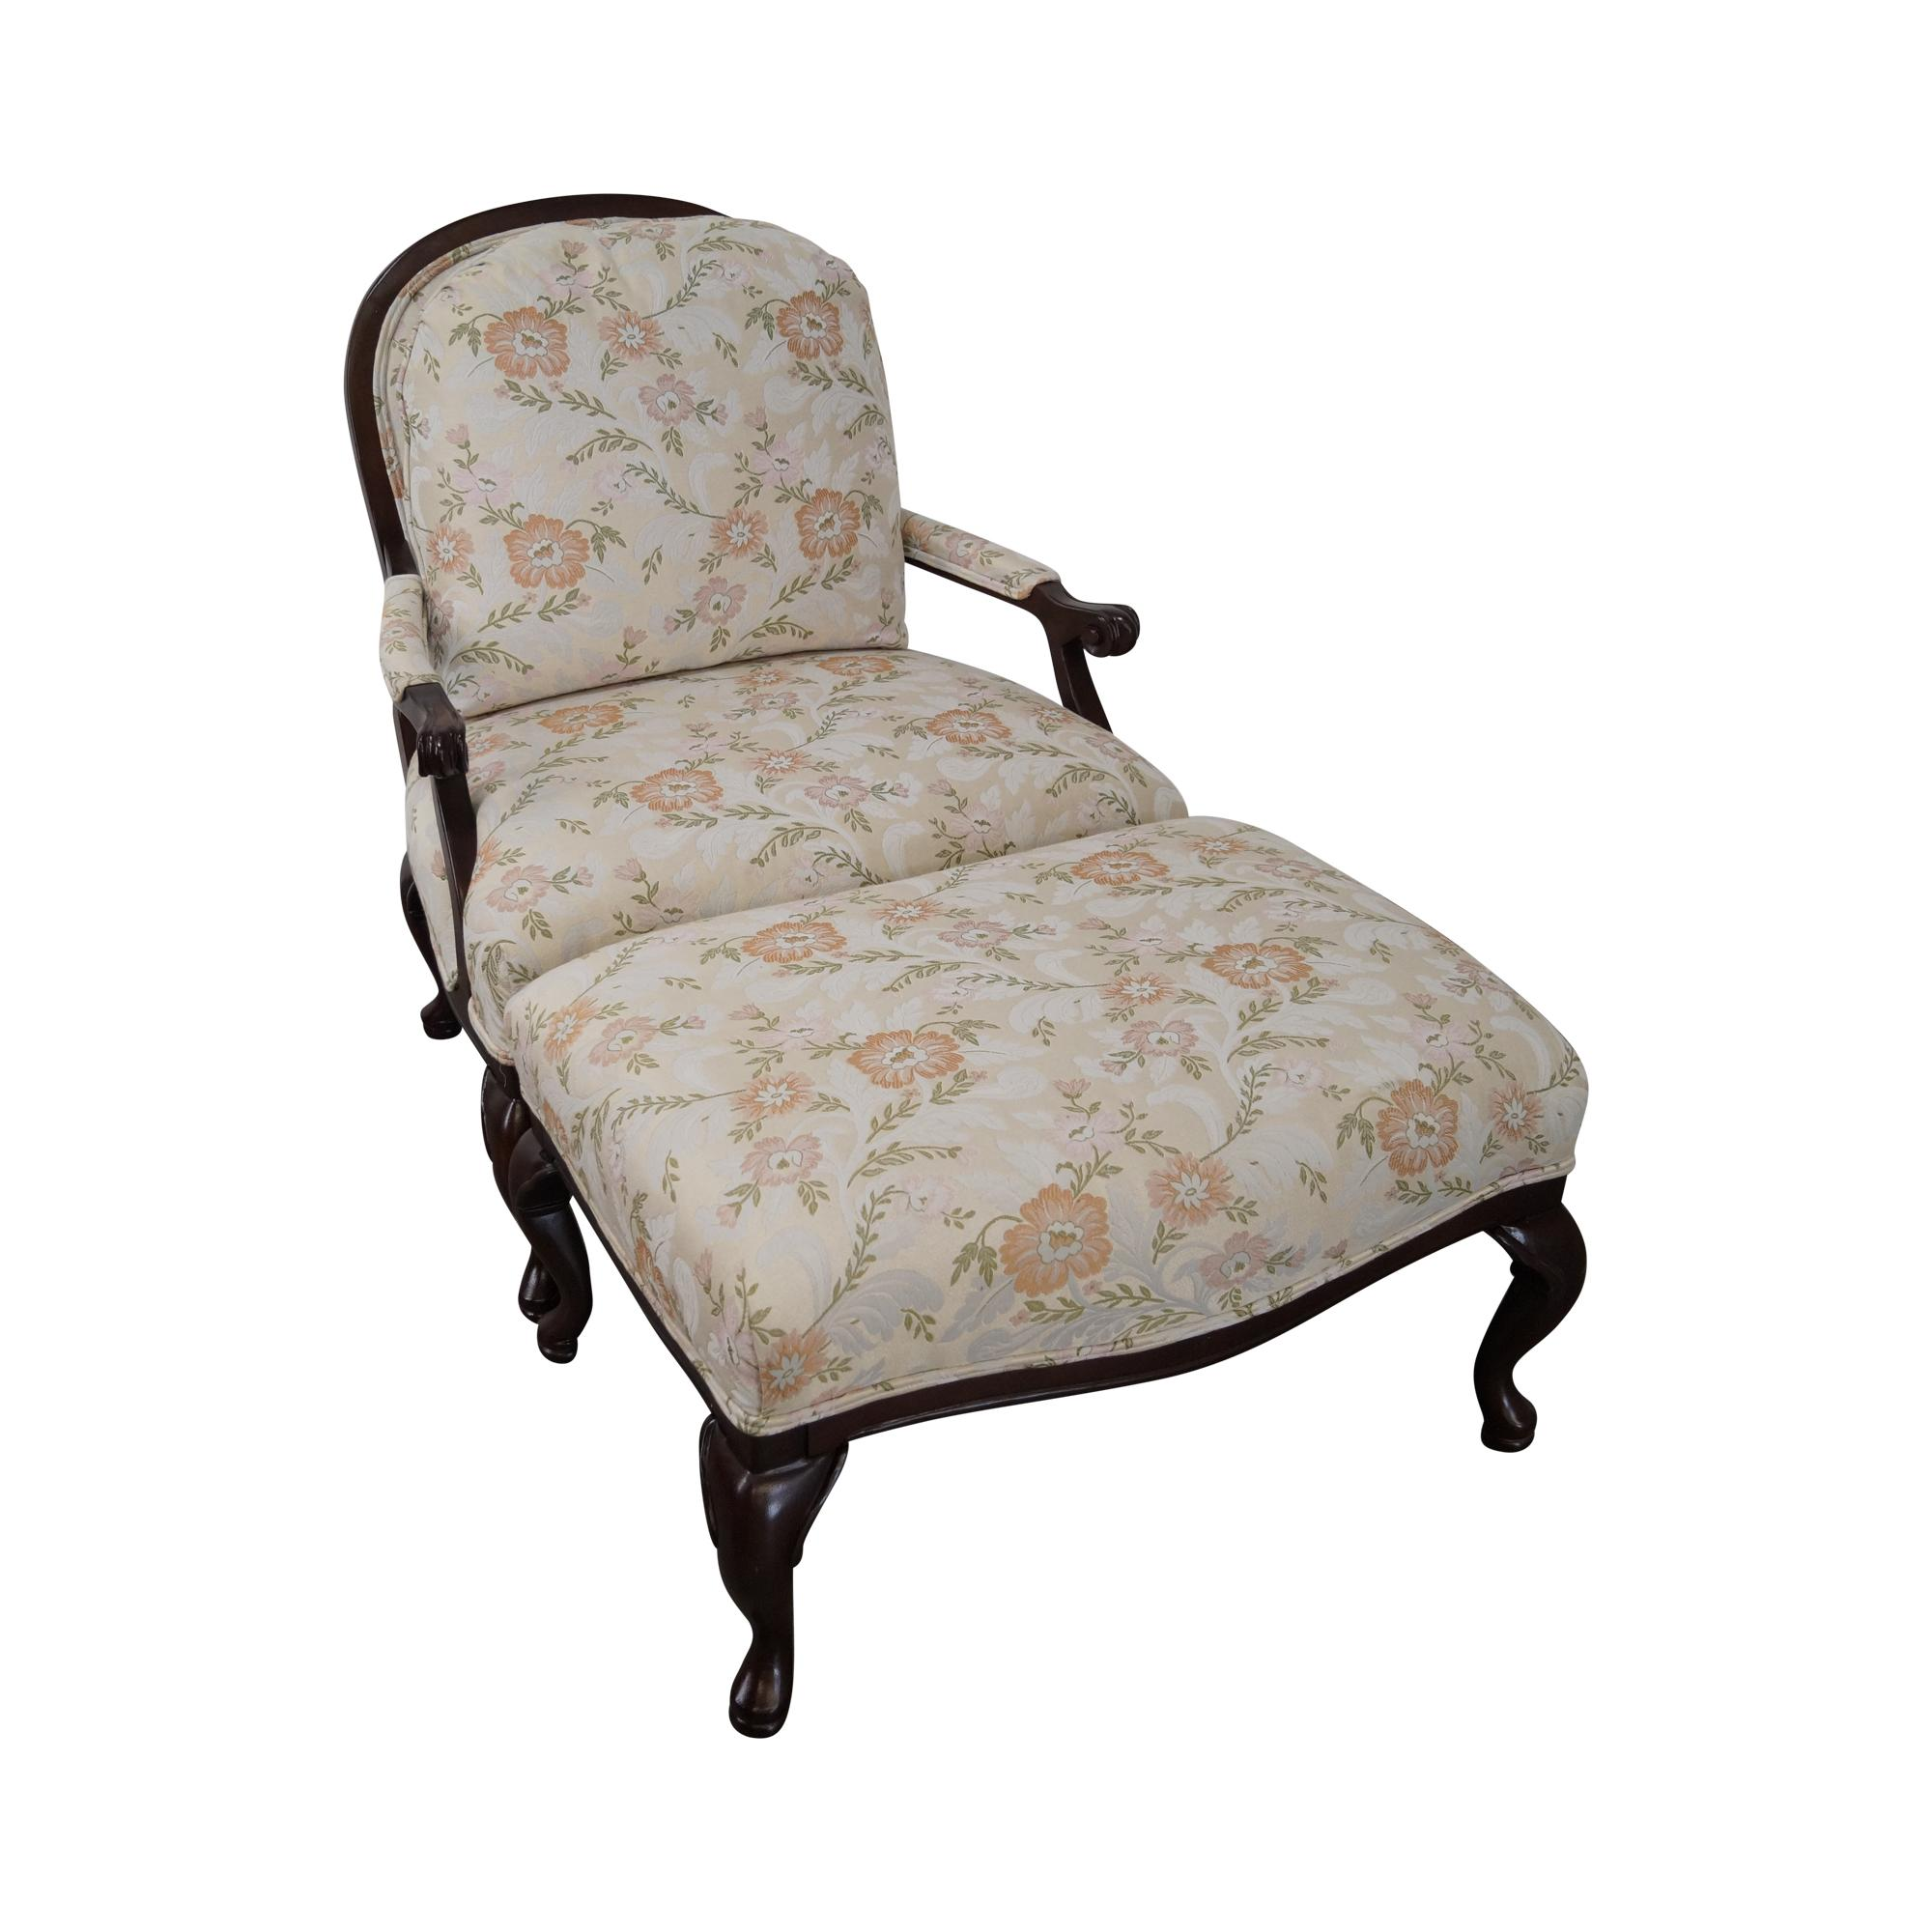 wide lounge chair floral wide seat lounge chair with ottoman chairish 22151 | 8afbaef5 41c5 47d2 bd80 869b609c1142